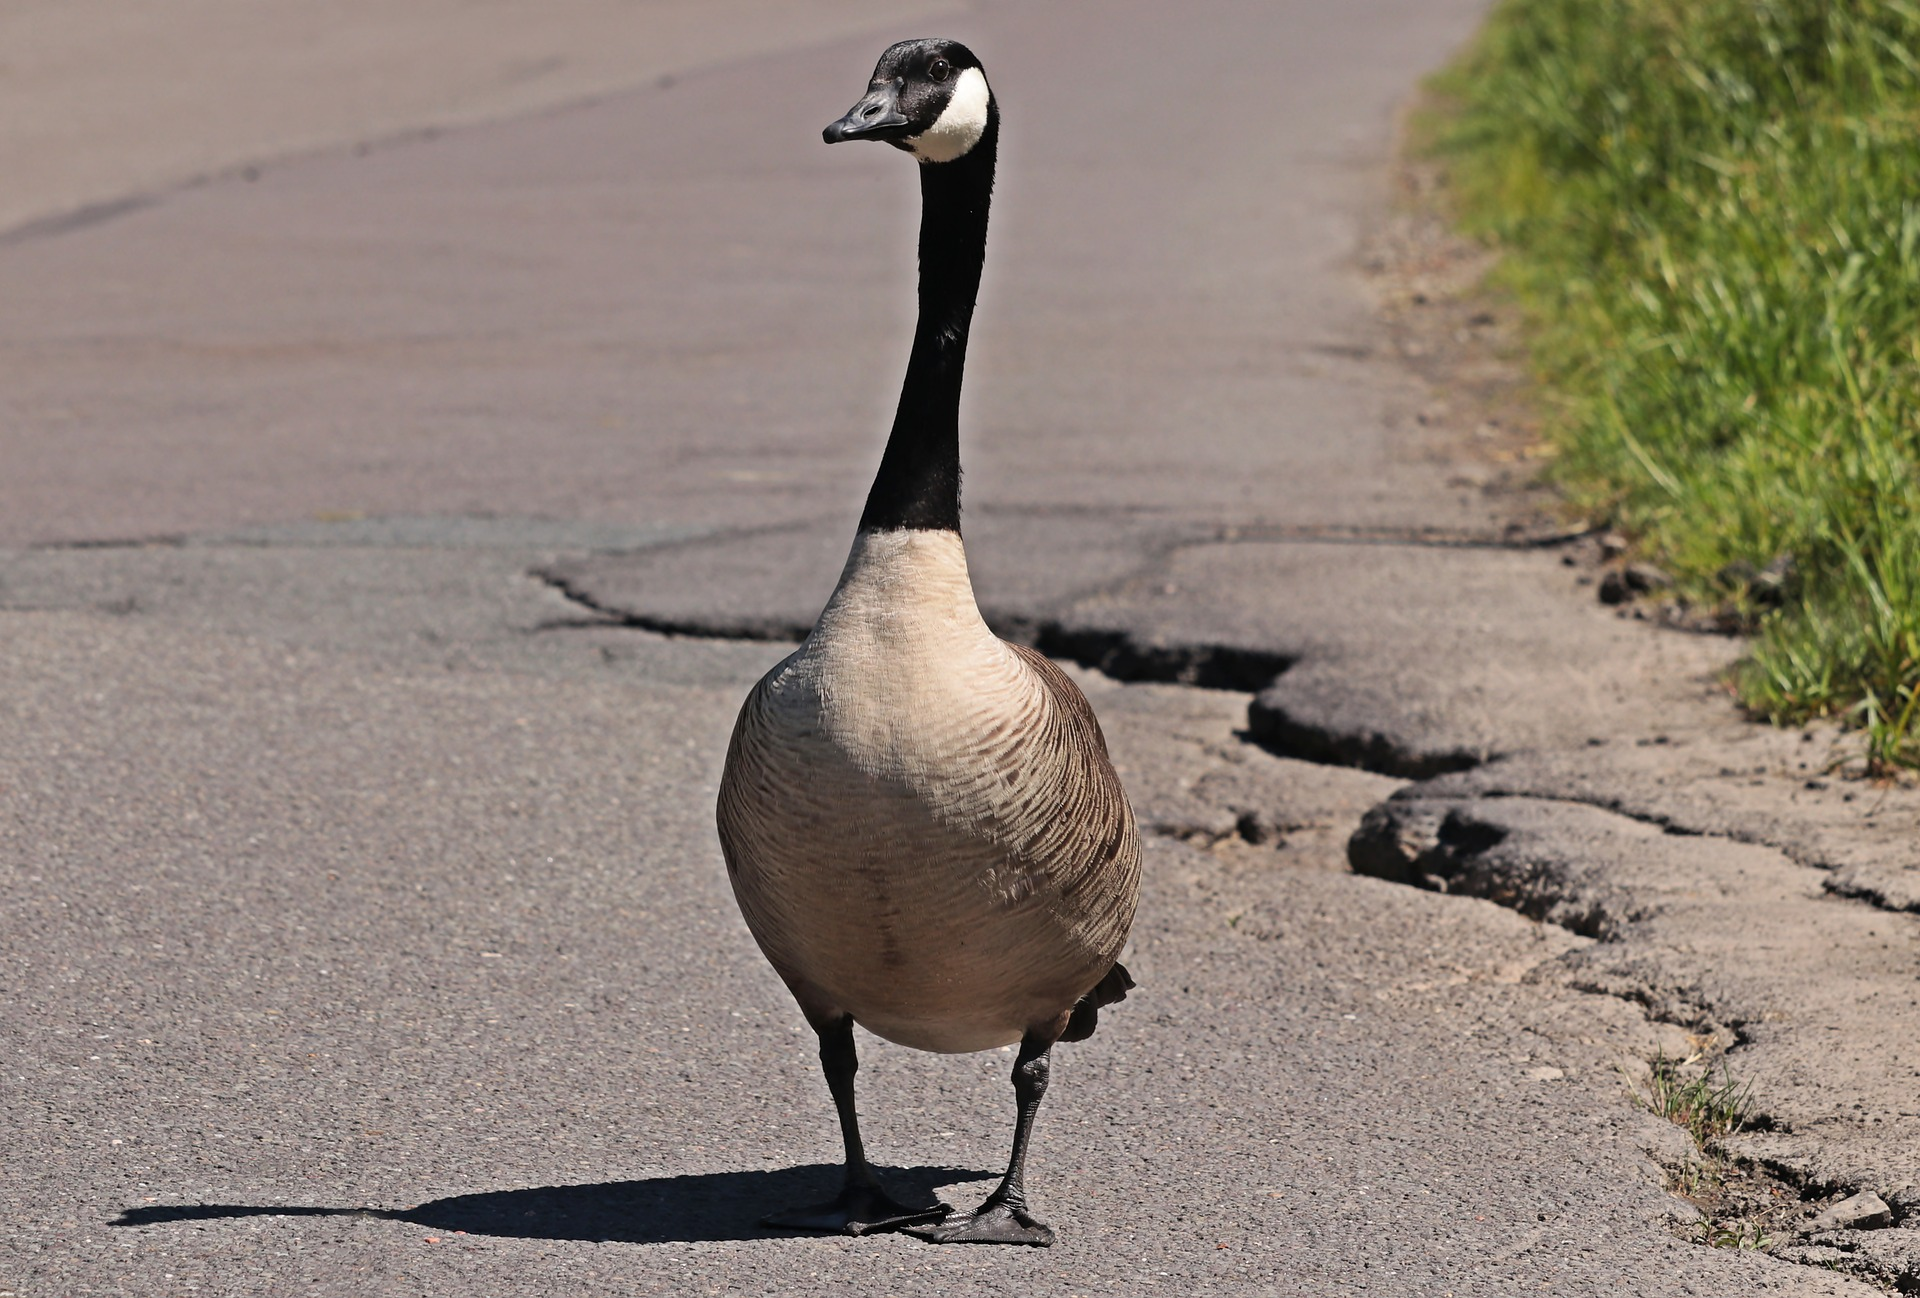 goose standing on pavement